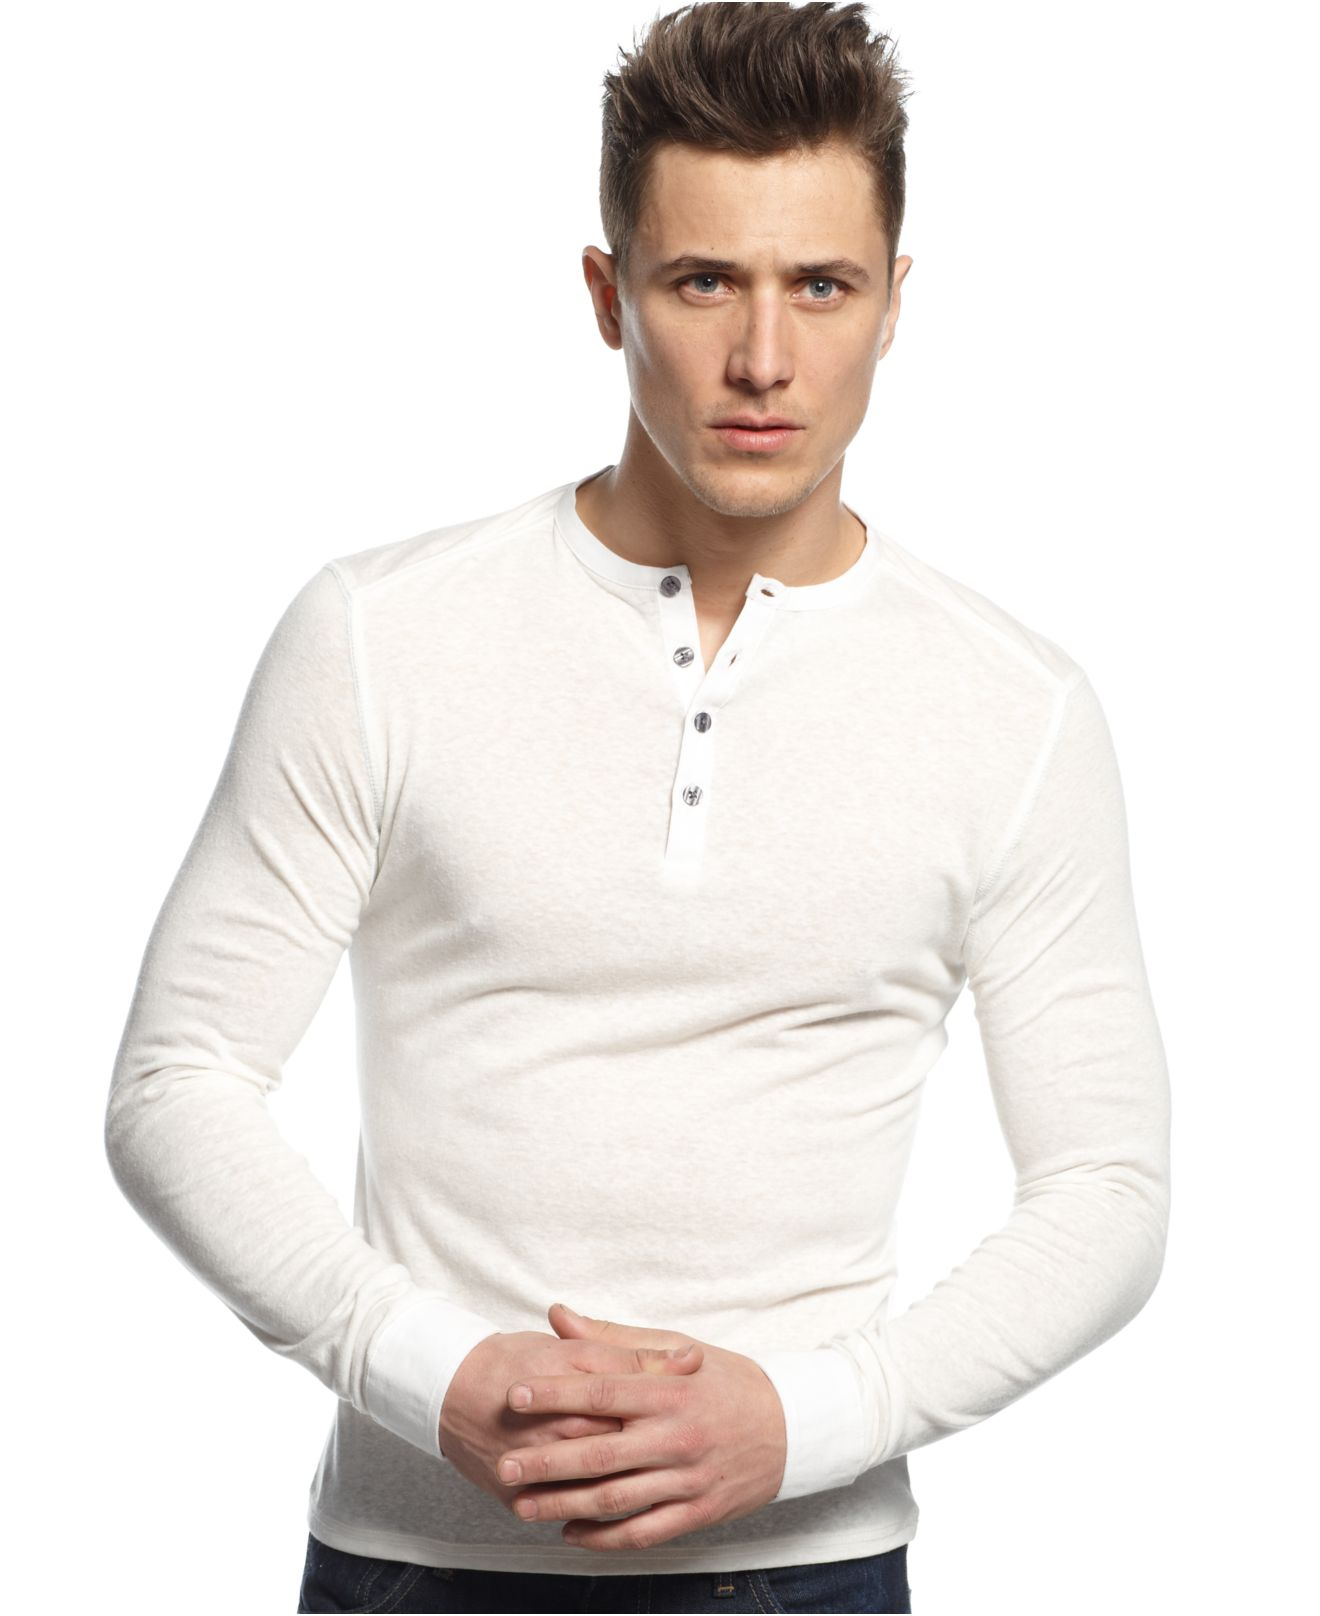 Stay warm with a Long Sleeve Henley, Men's Long Sleeve Henley, Women's Long Sleeve Henley and Juniors Long Sleeve Henley from Macy's.